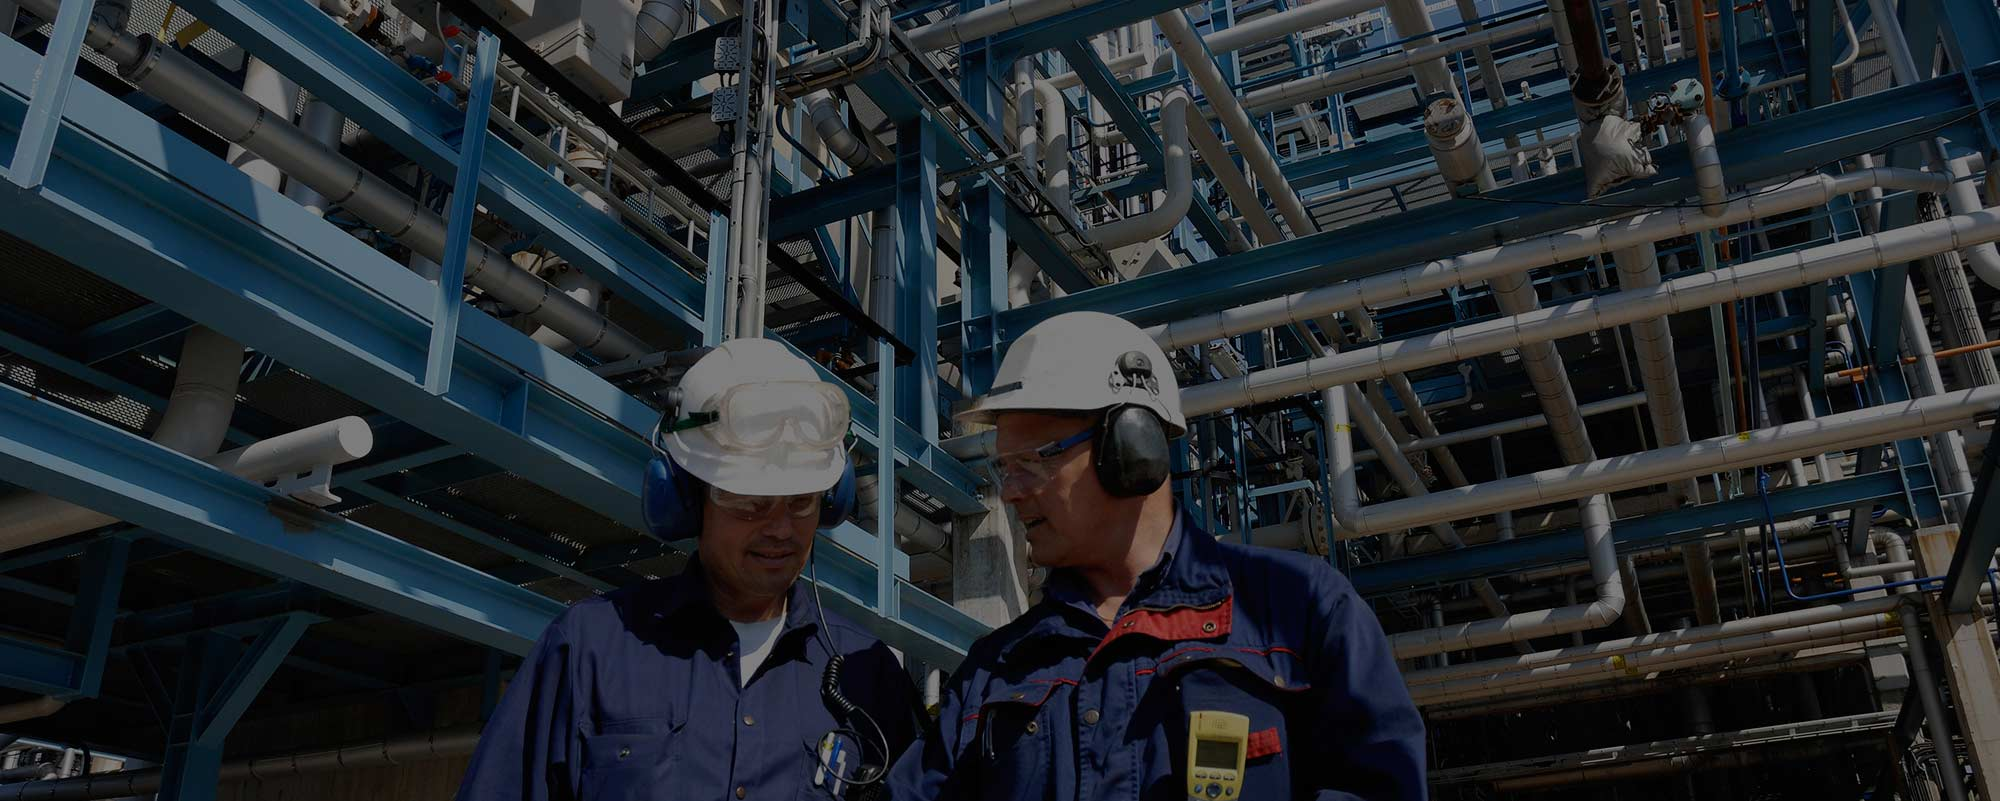 Energy Industry Website Design | Oil and Gas Houston, Texas